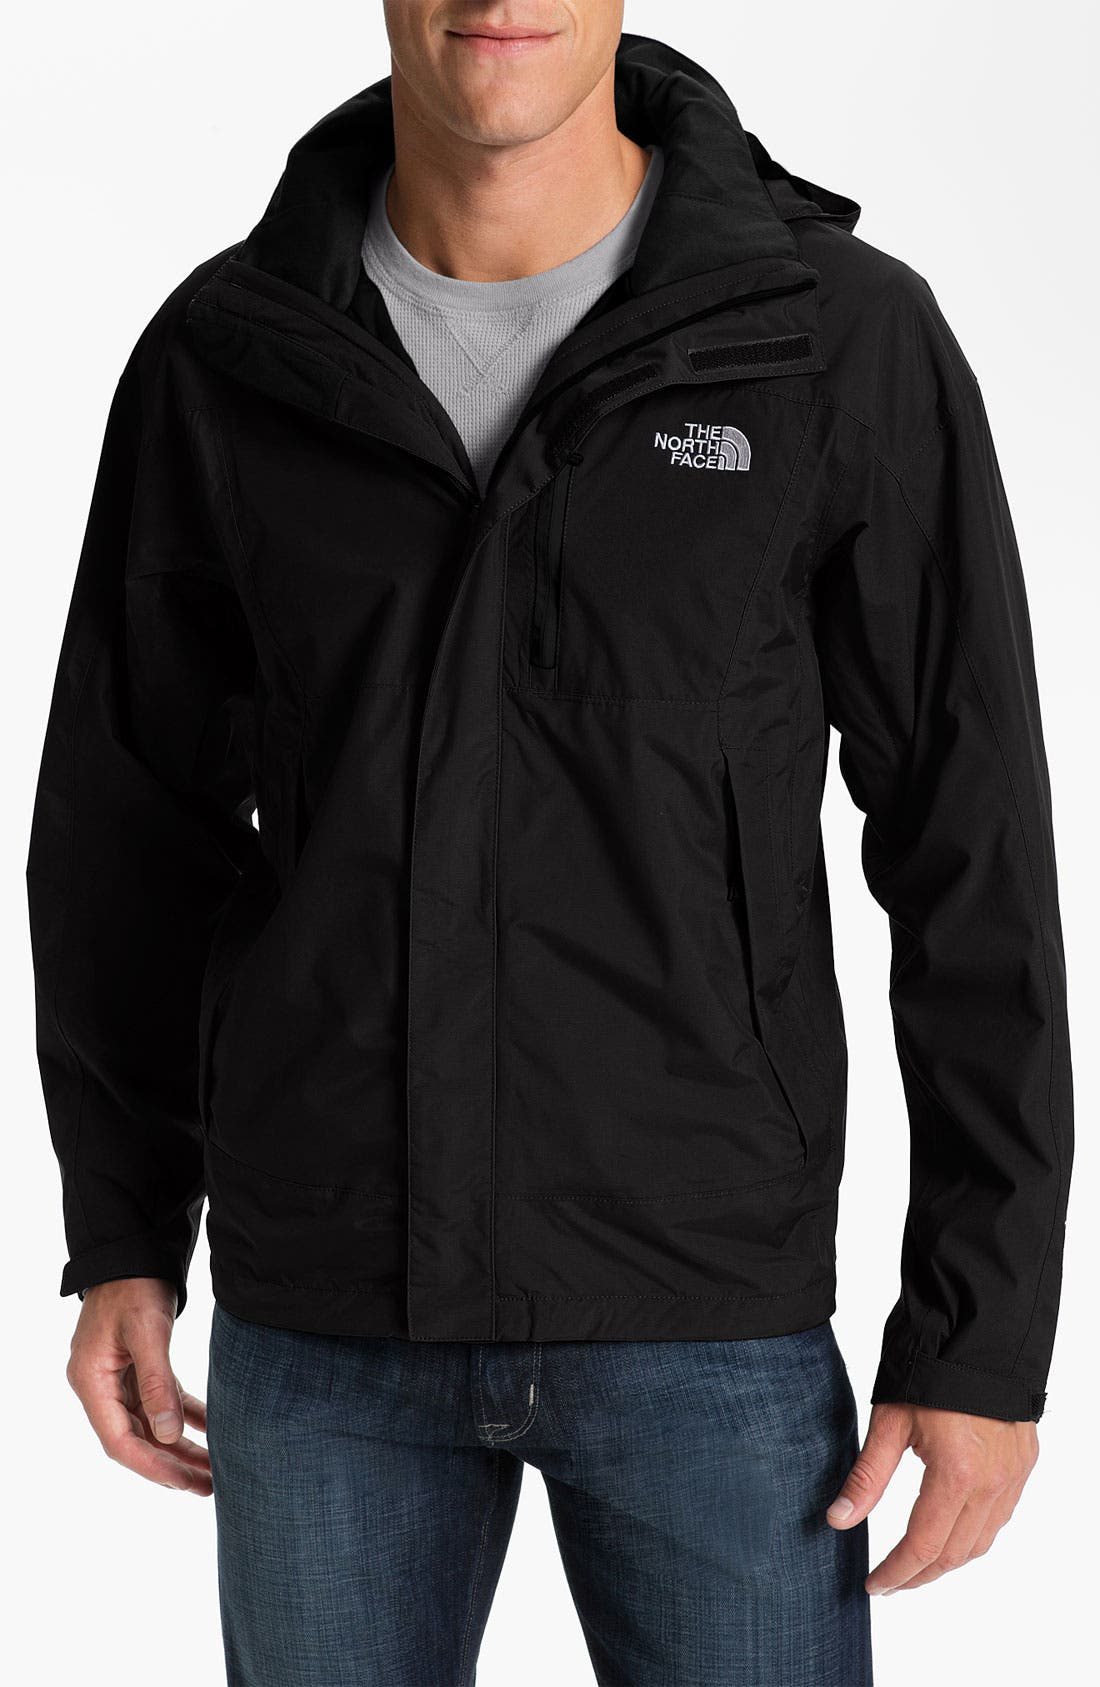 Alternate Image 1 Selected - The North Face 'Various Guide' Jacket